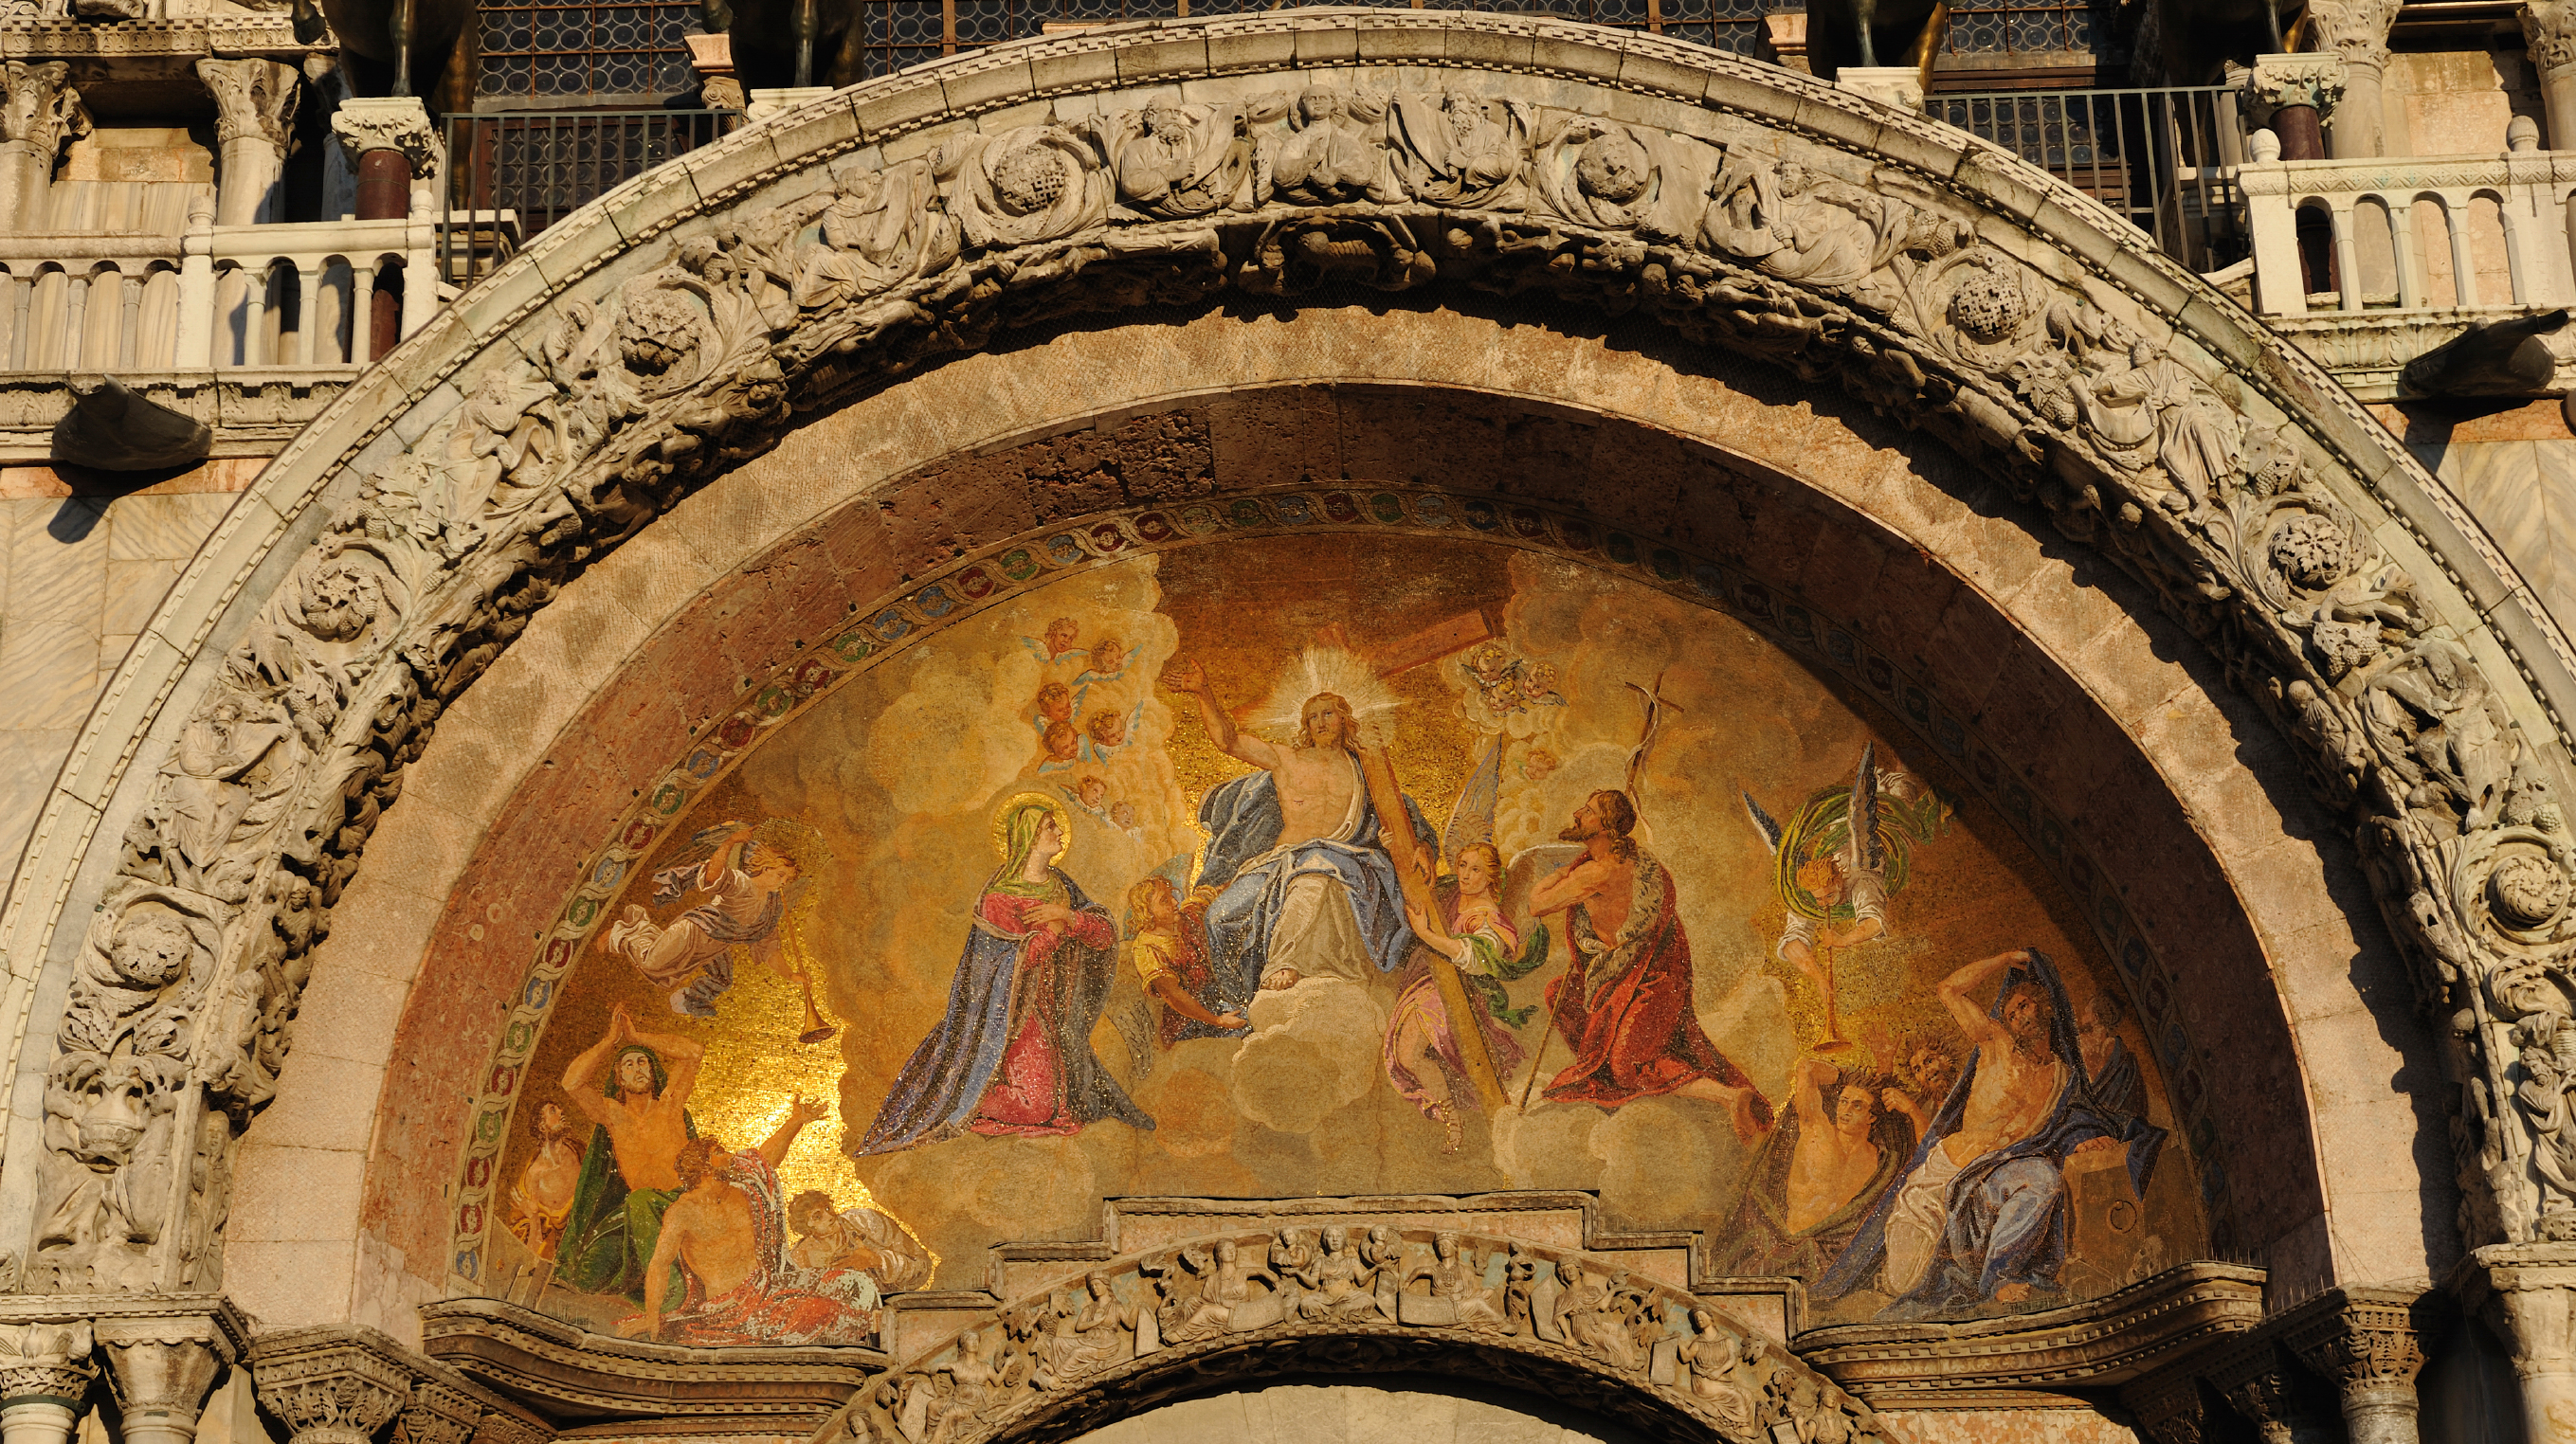 Ssan Marco Venice www.istockphoto.com:photo:san-marco-basilica-in-venice-gm98427422-11113136?st=325ce36